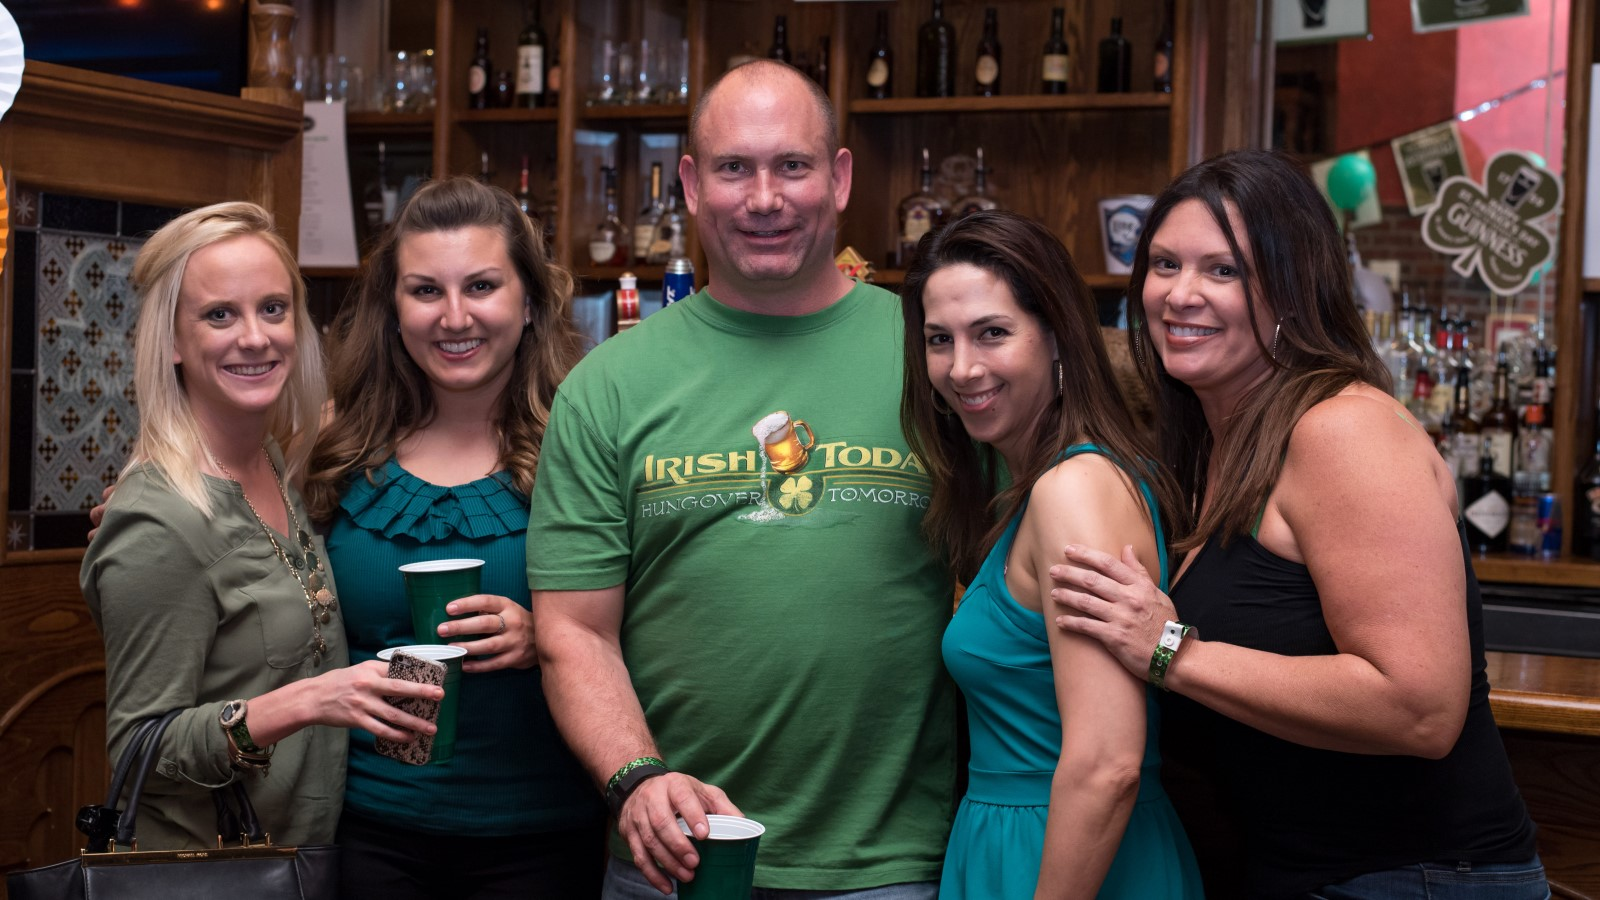 Irish Pub Orlando | An Tobar Irish Pub | Sheraton Orlando North Hotel